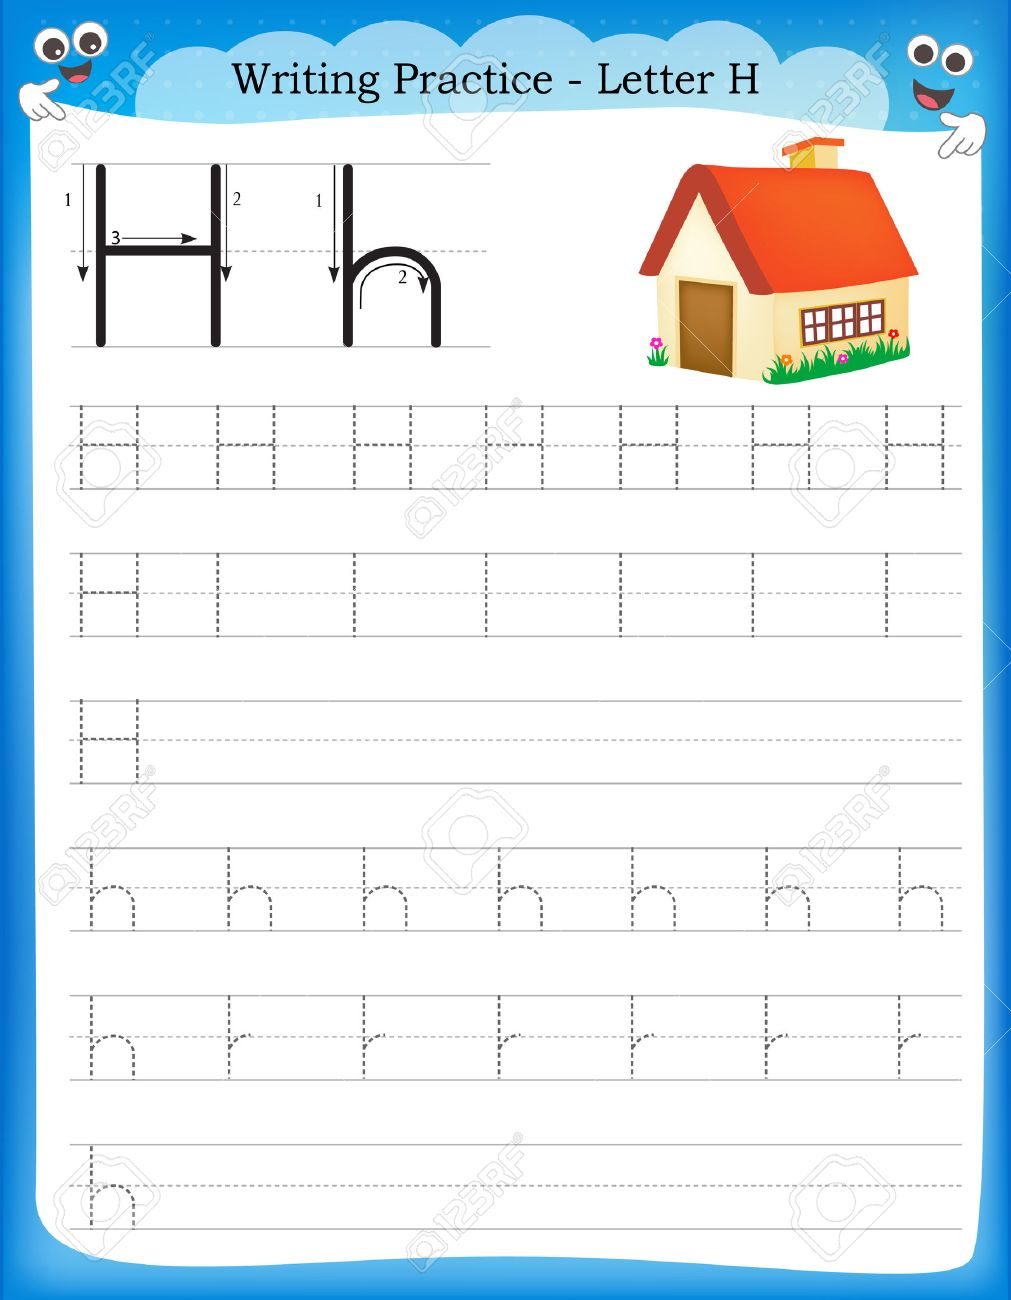 writing practice letter h printable worksheet for preschool